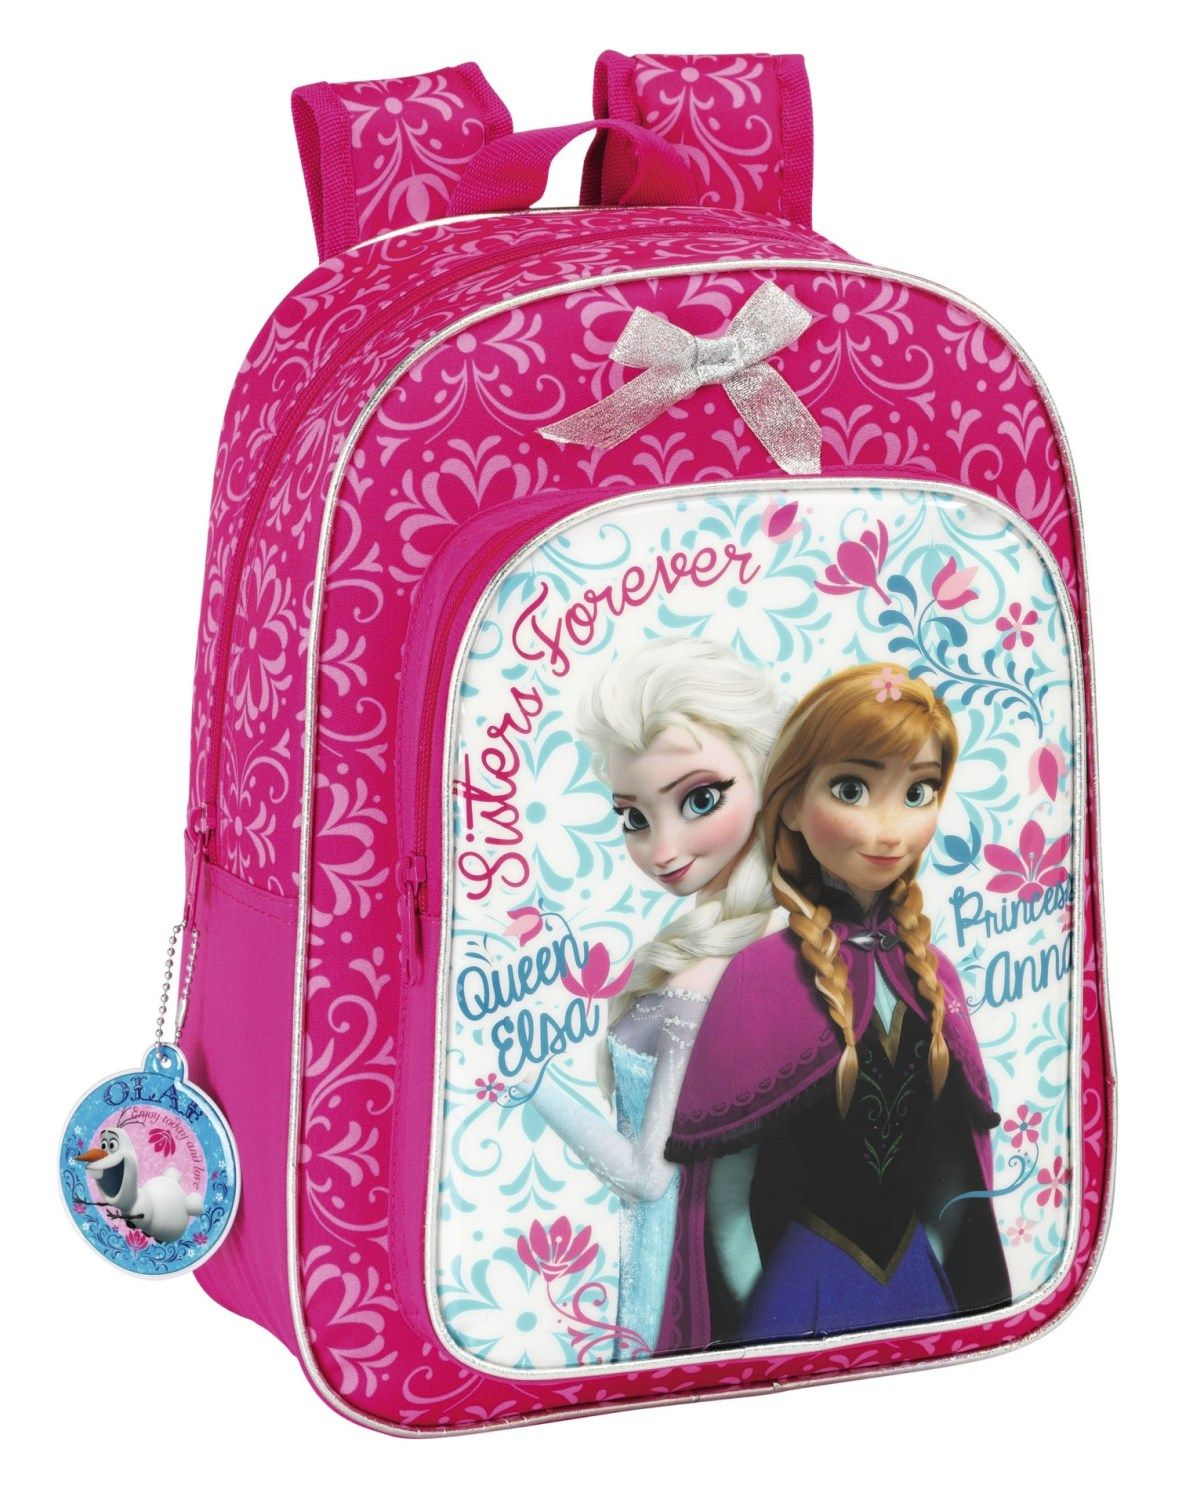 fbcf7a490b8 Frozen Medium Size Backpack. Sisters Forever Collection. Very pretty  backpack